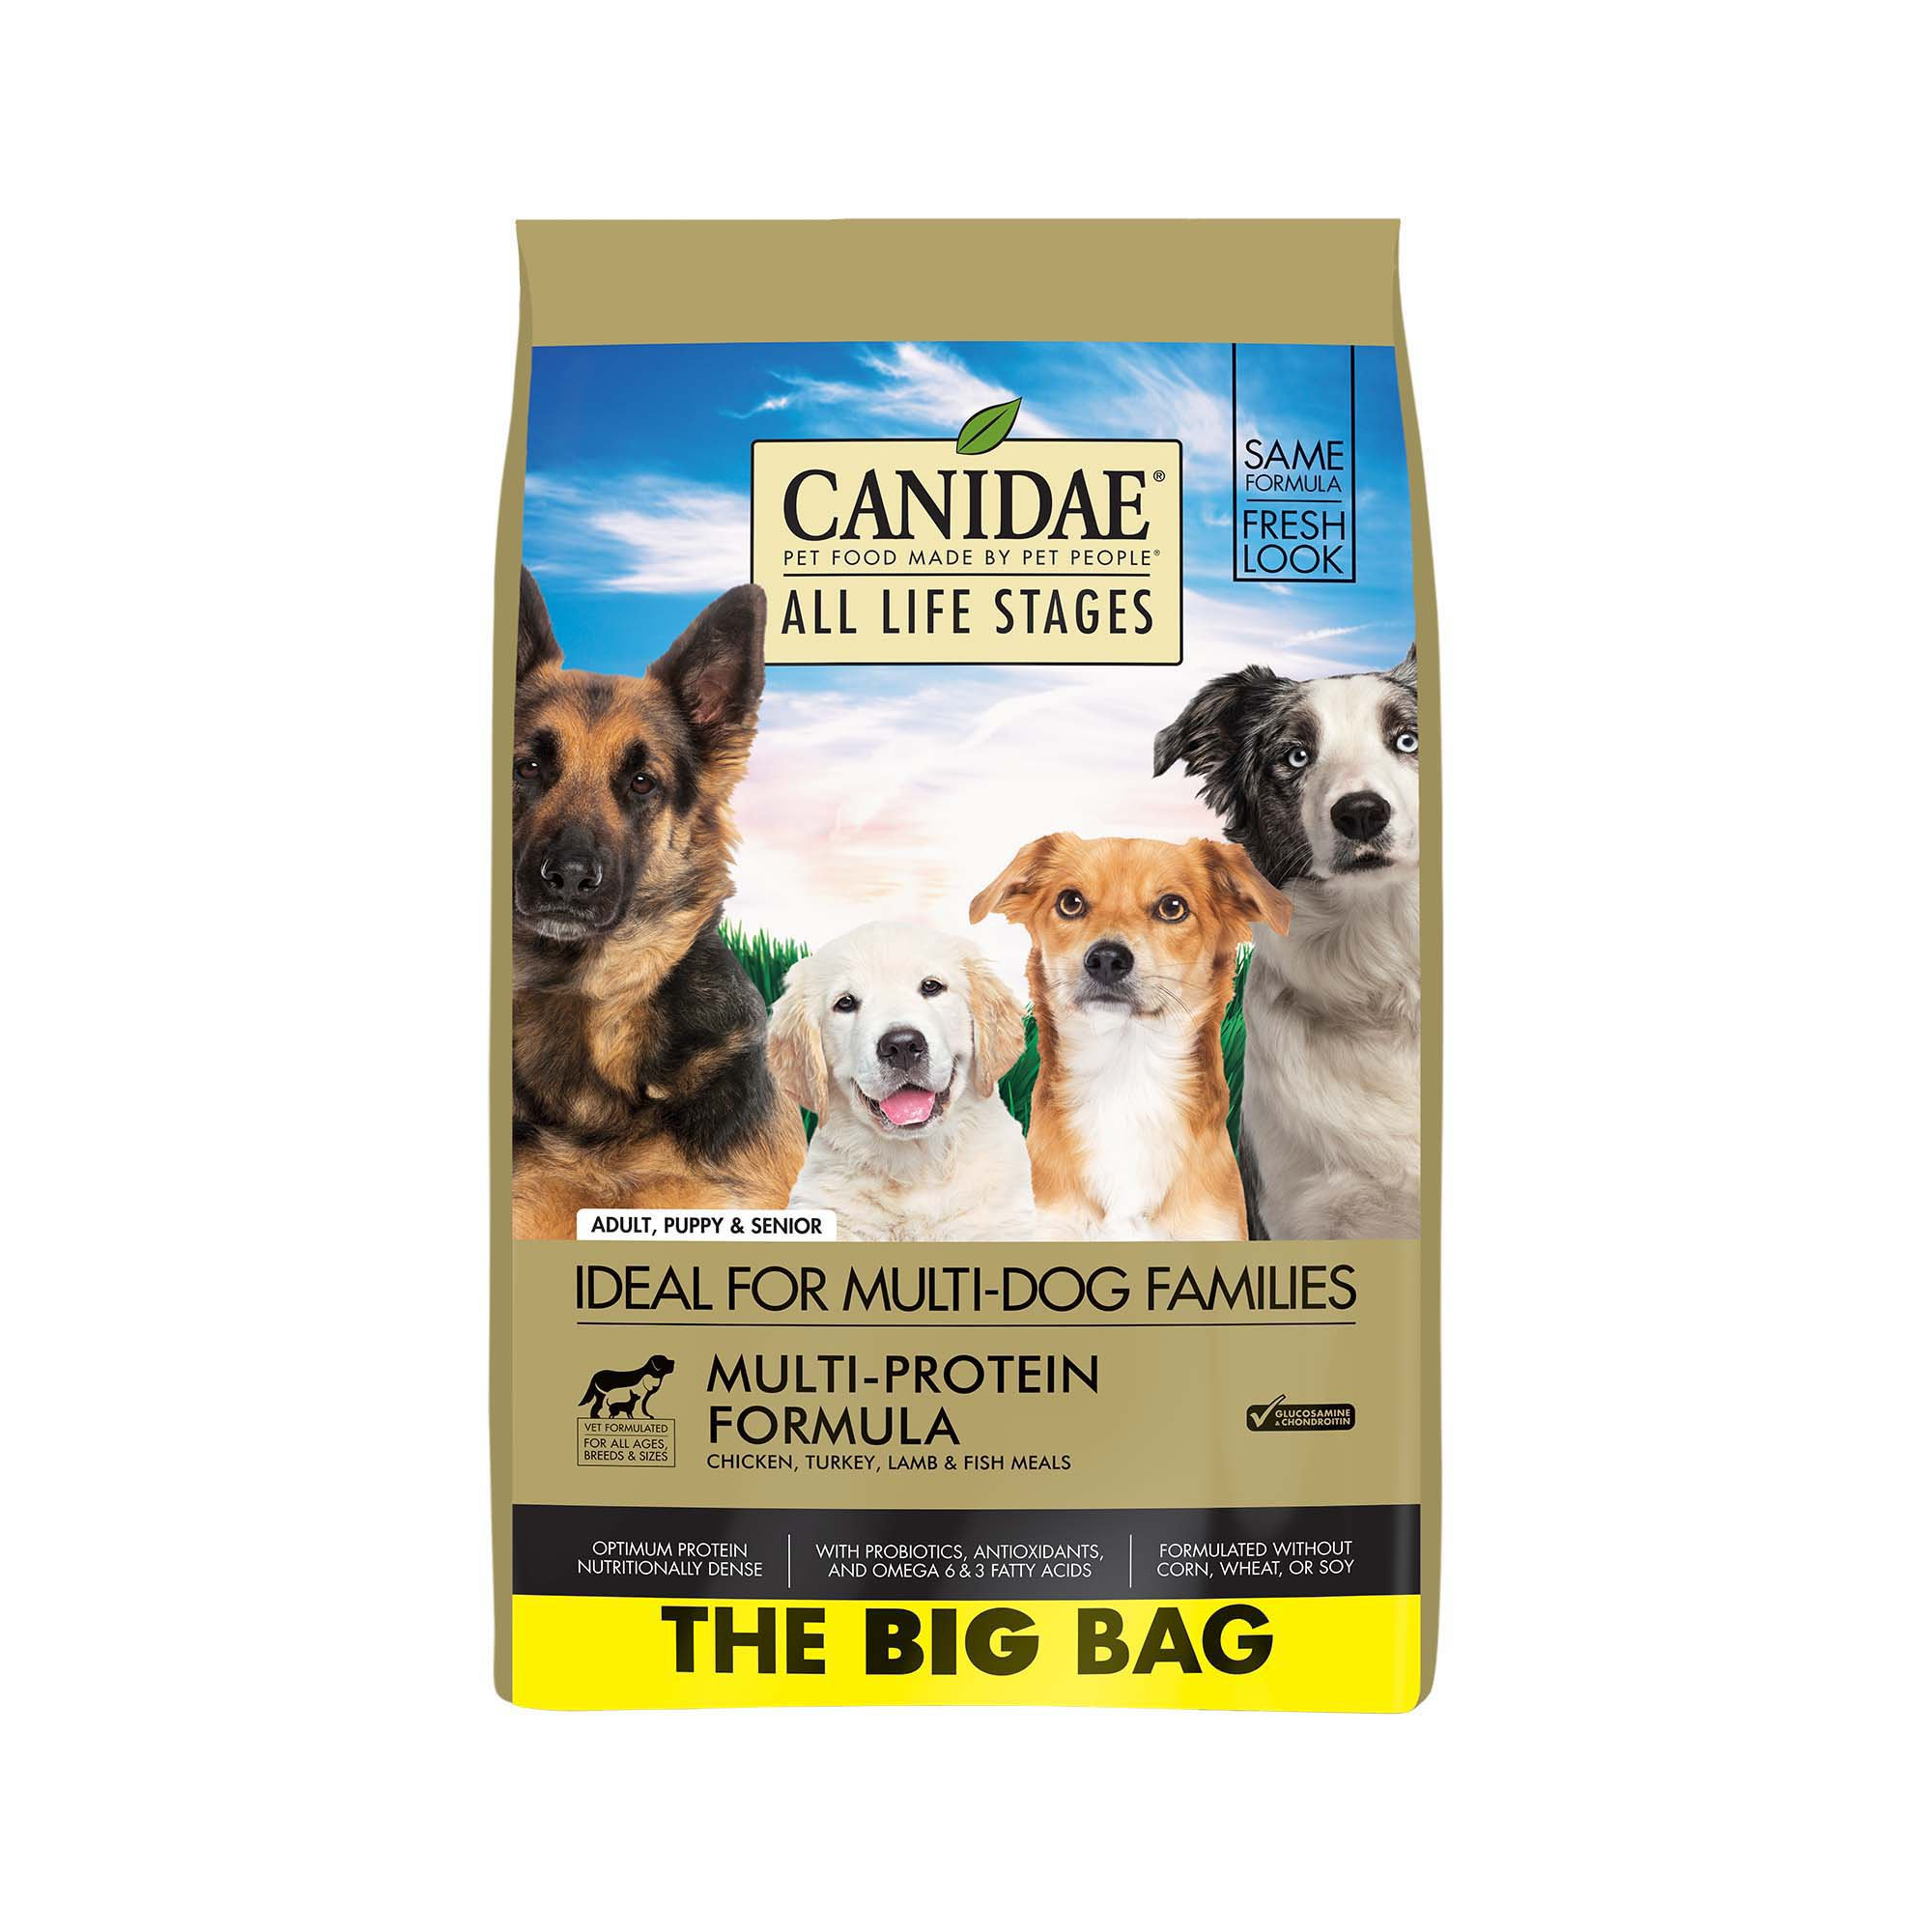 CANIDAE All Life Stages Chicken, Turkey, Lamb & Fish Meals Formula Dry Dog Food, 44 lbs.